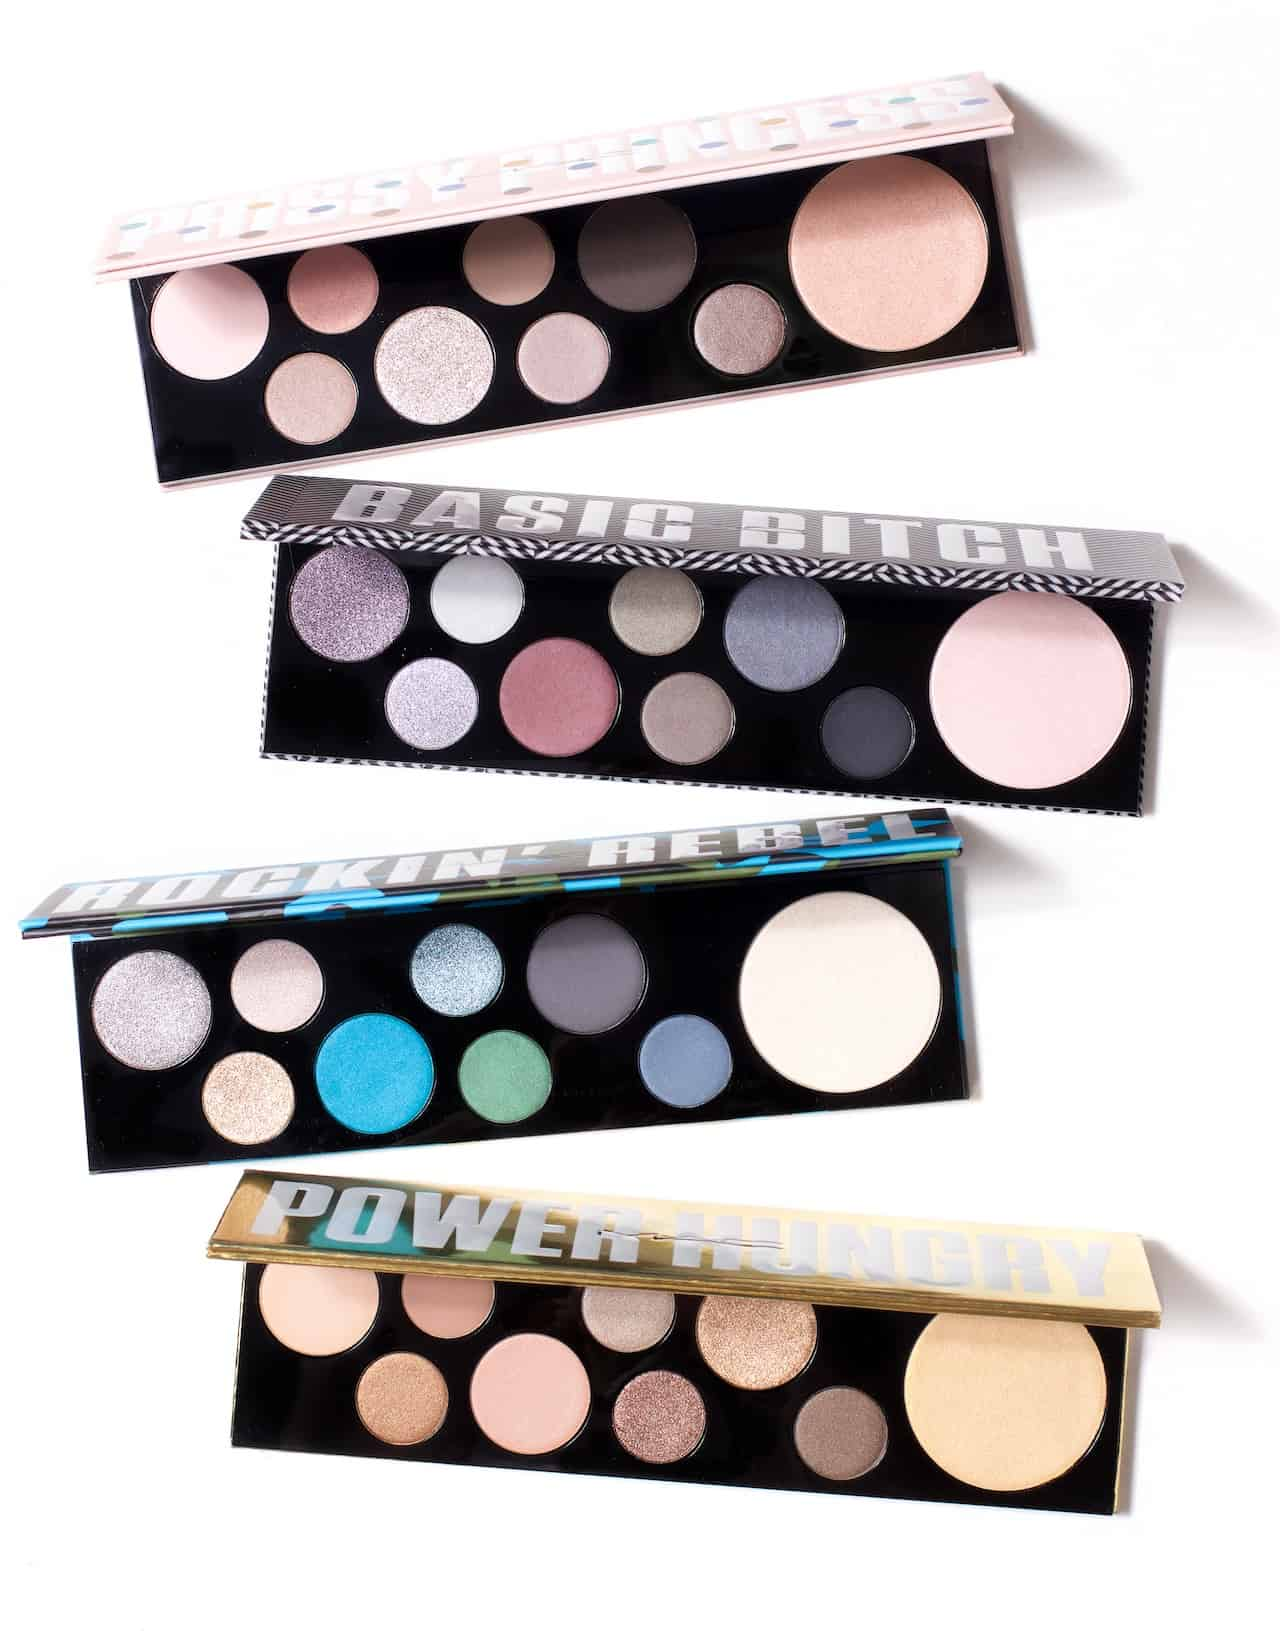 Mac girls eye shadow palettes just 3358 160 value macys is selling mac girls eye shadow palette collection for 3950 this is a 160 value you can get for a fraction of the price thecheapjerseys Image collections